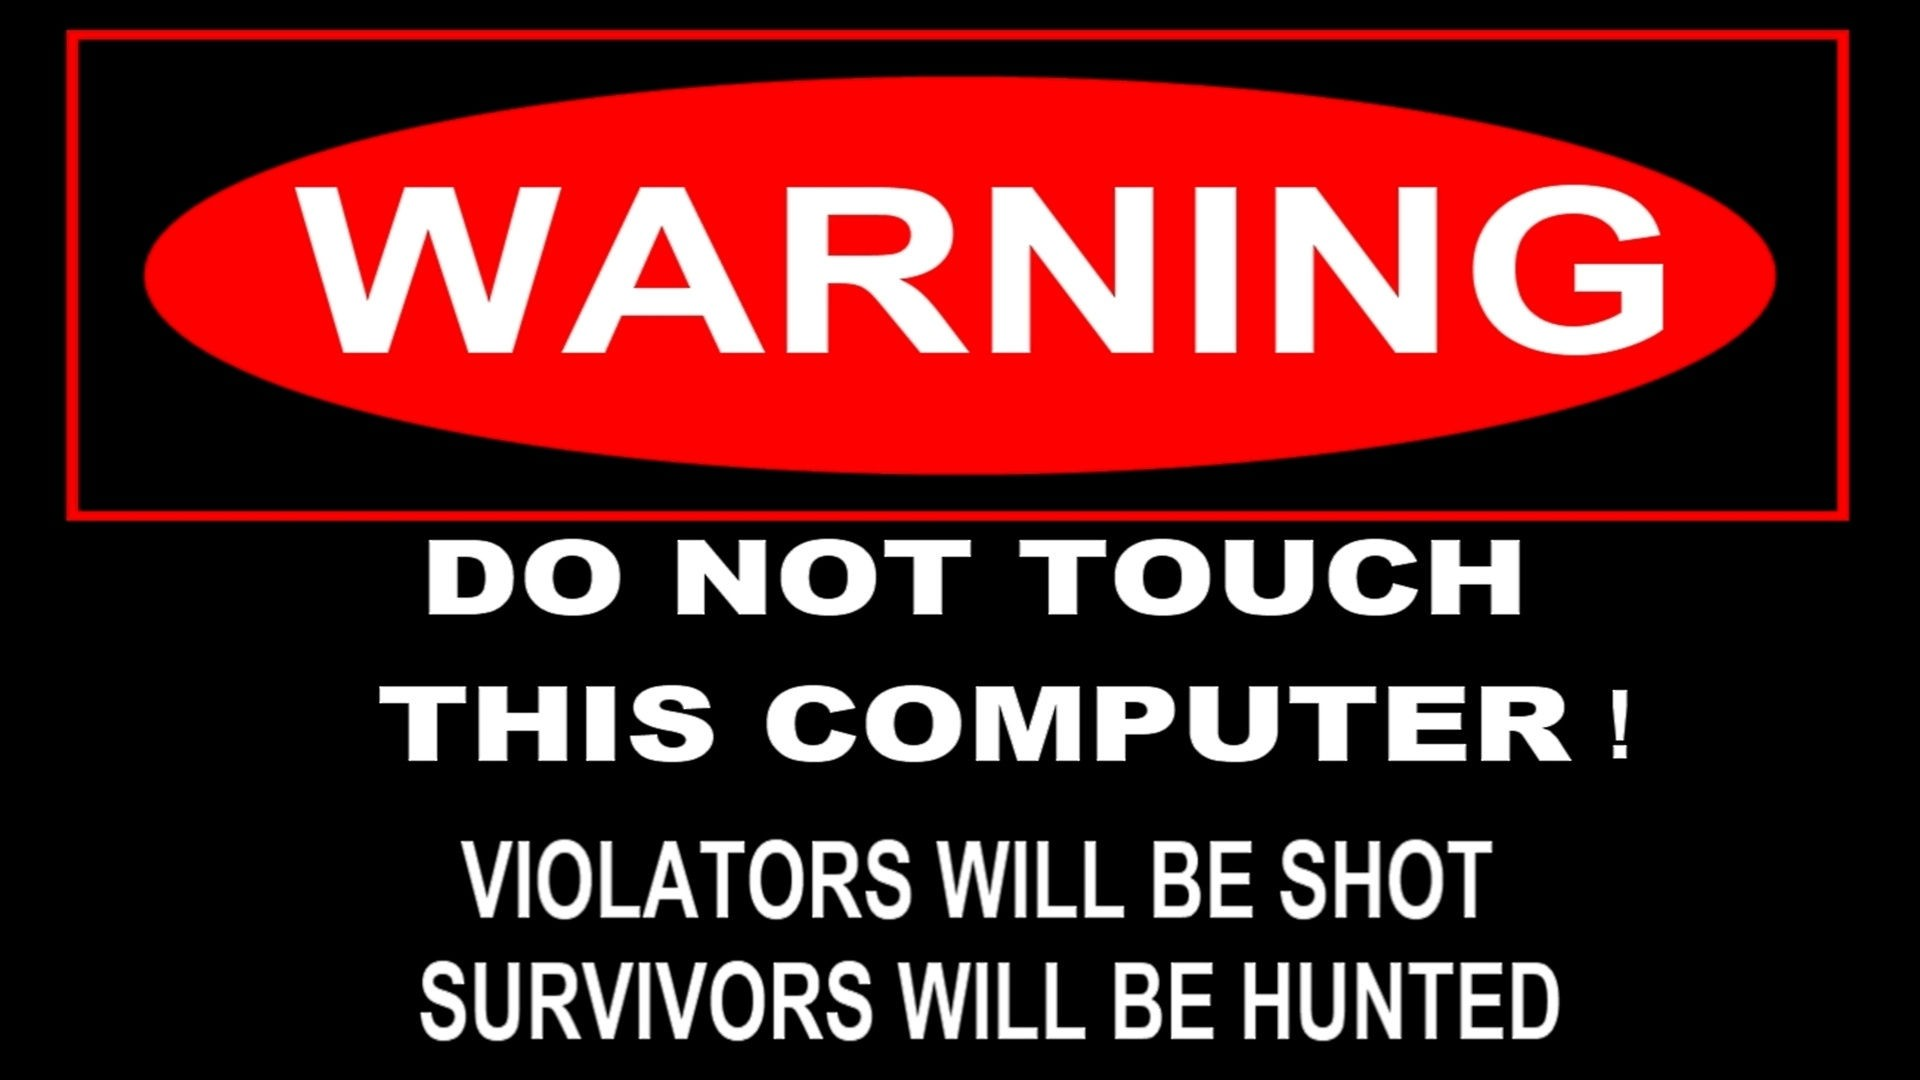 Warning Do Not Touch This Computer Full HD Wallpaper And